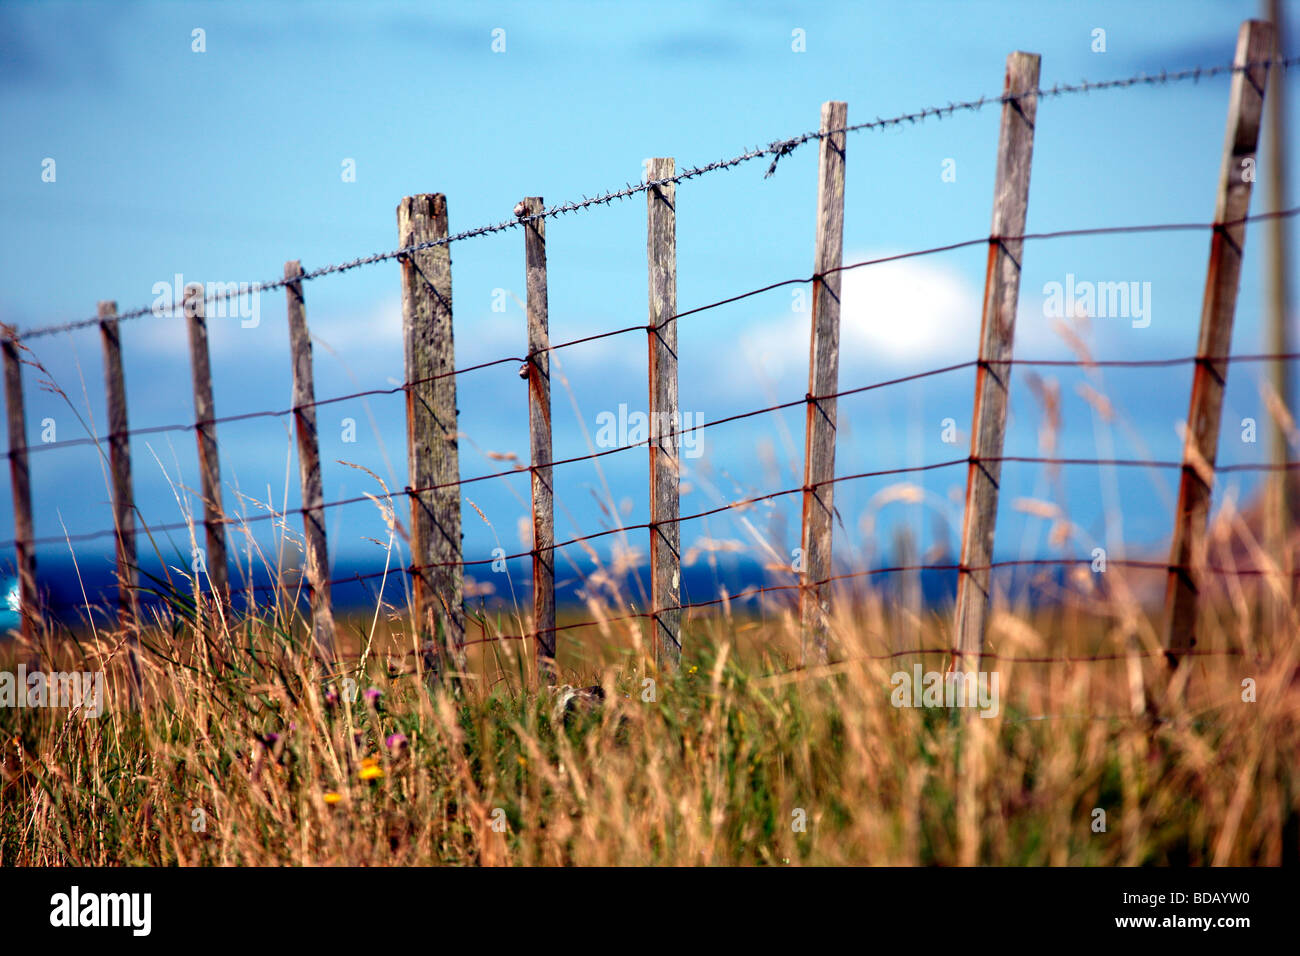 Agricultural Fencing Stock Photos & Agricultural Fencing Stock ...